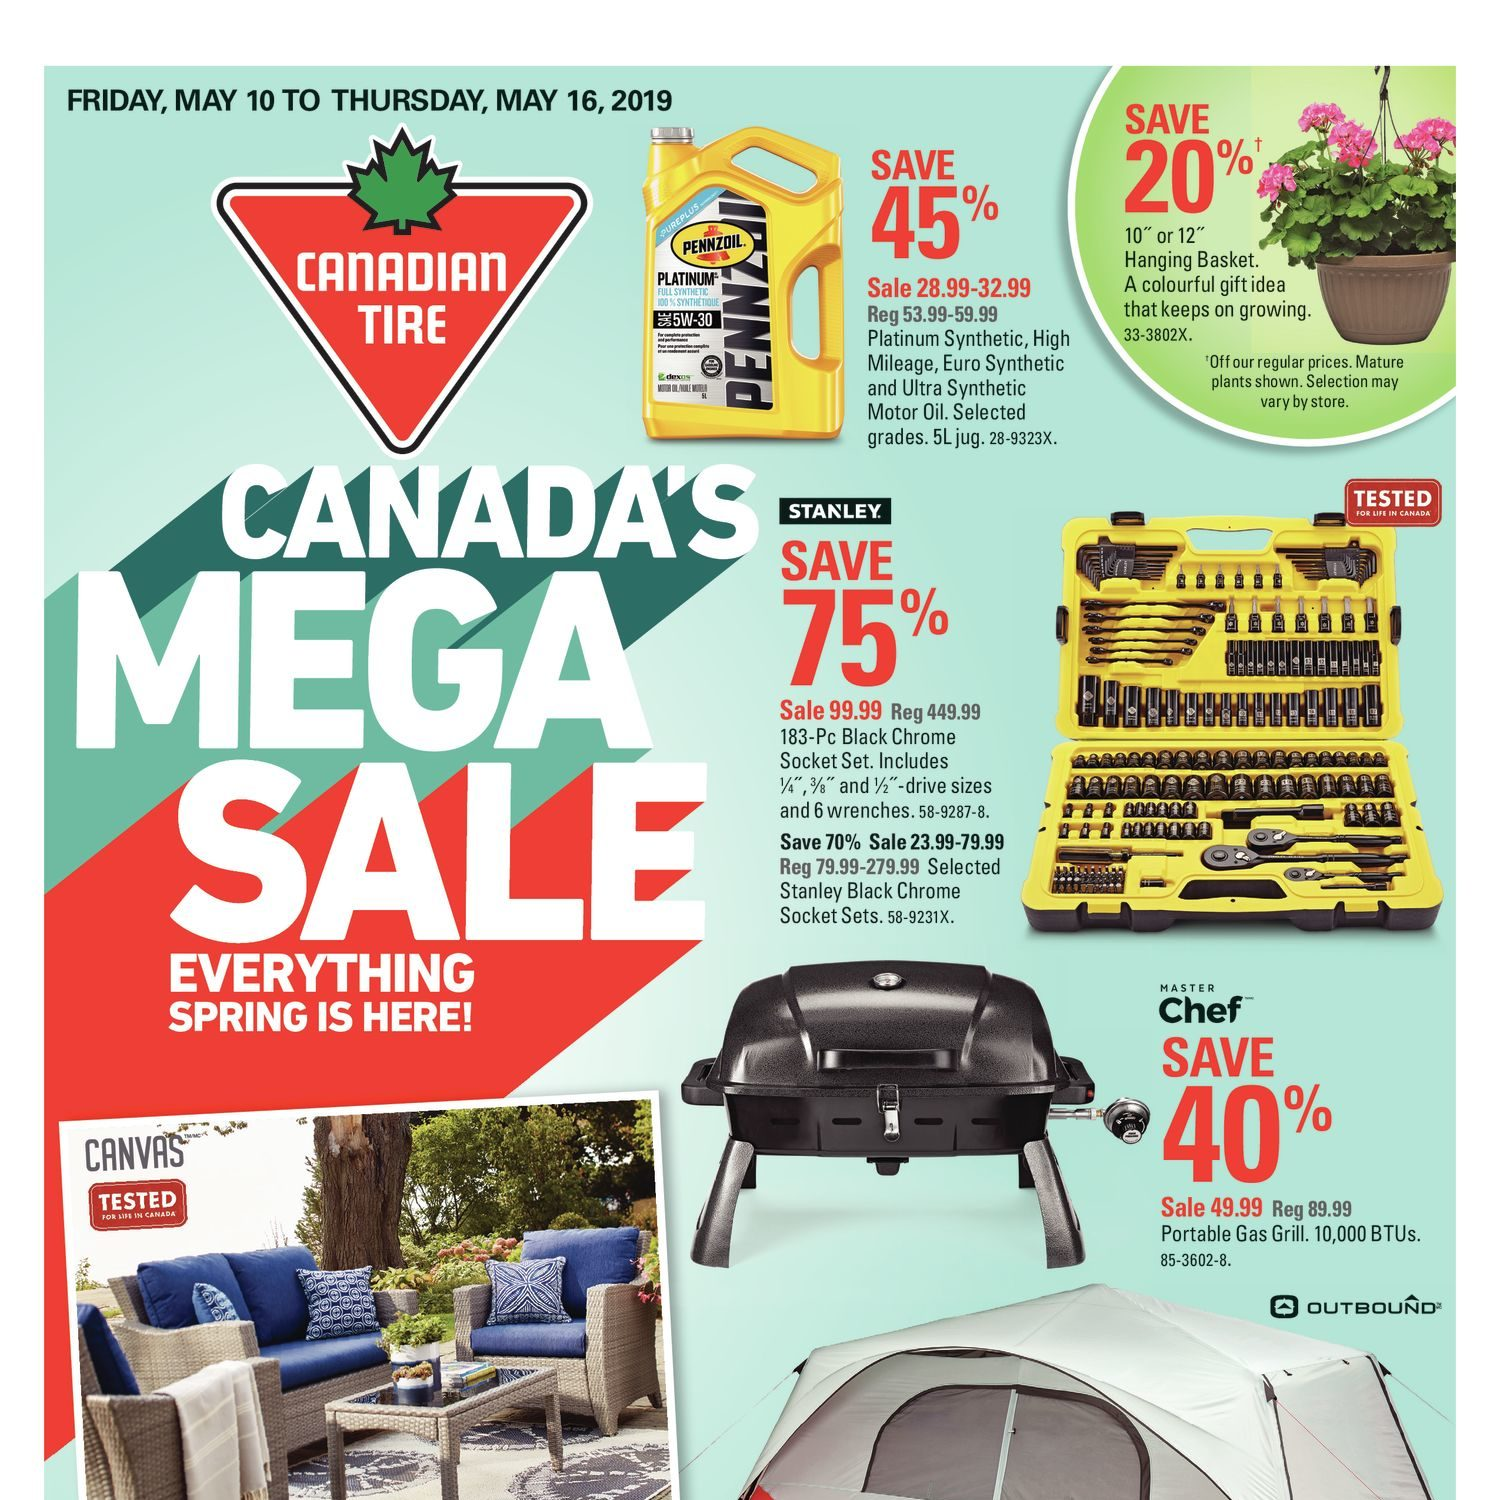 Canadian Tire Weekly Flyer - Weekly - Canada's Mega Sale - May 10